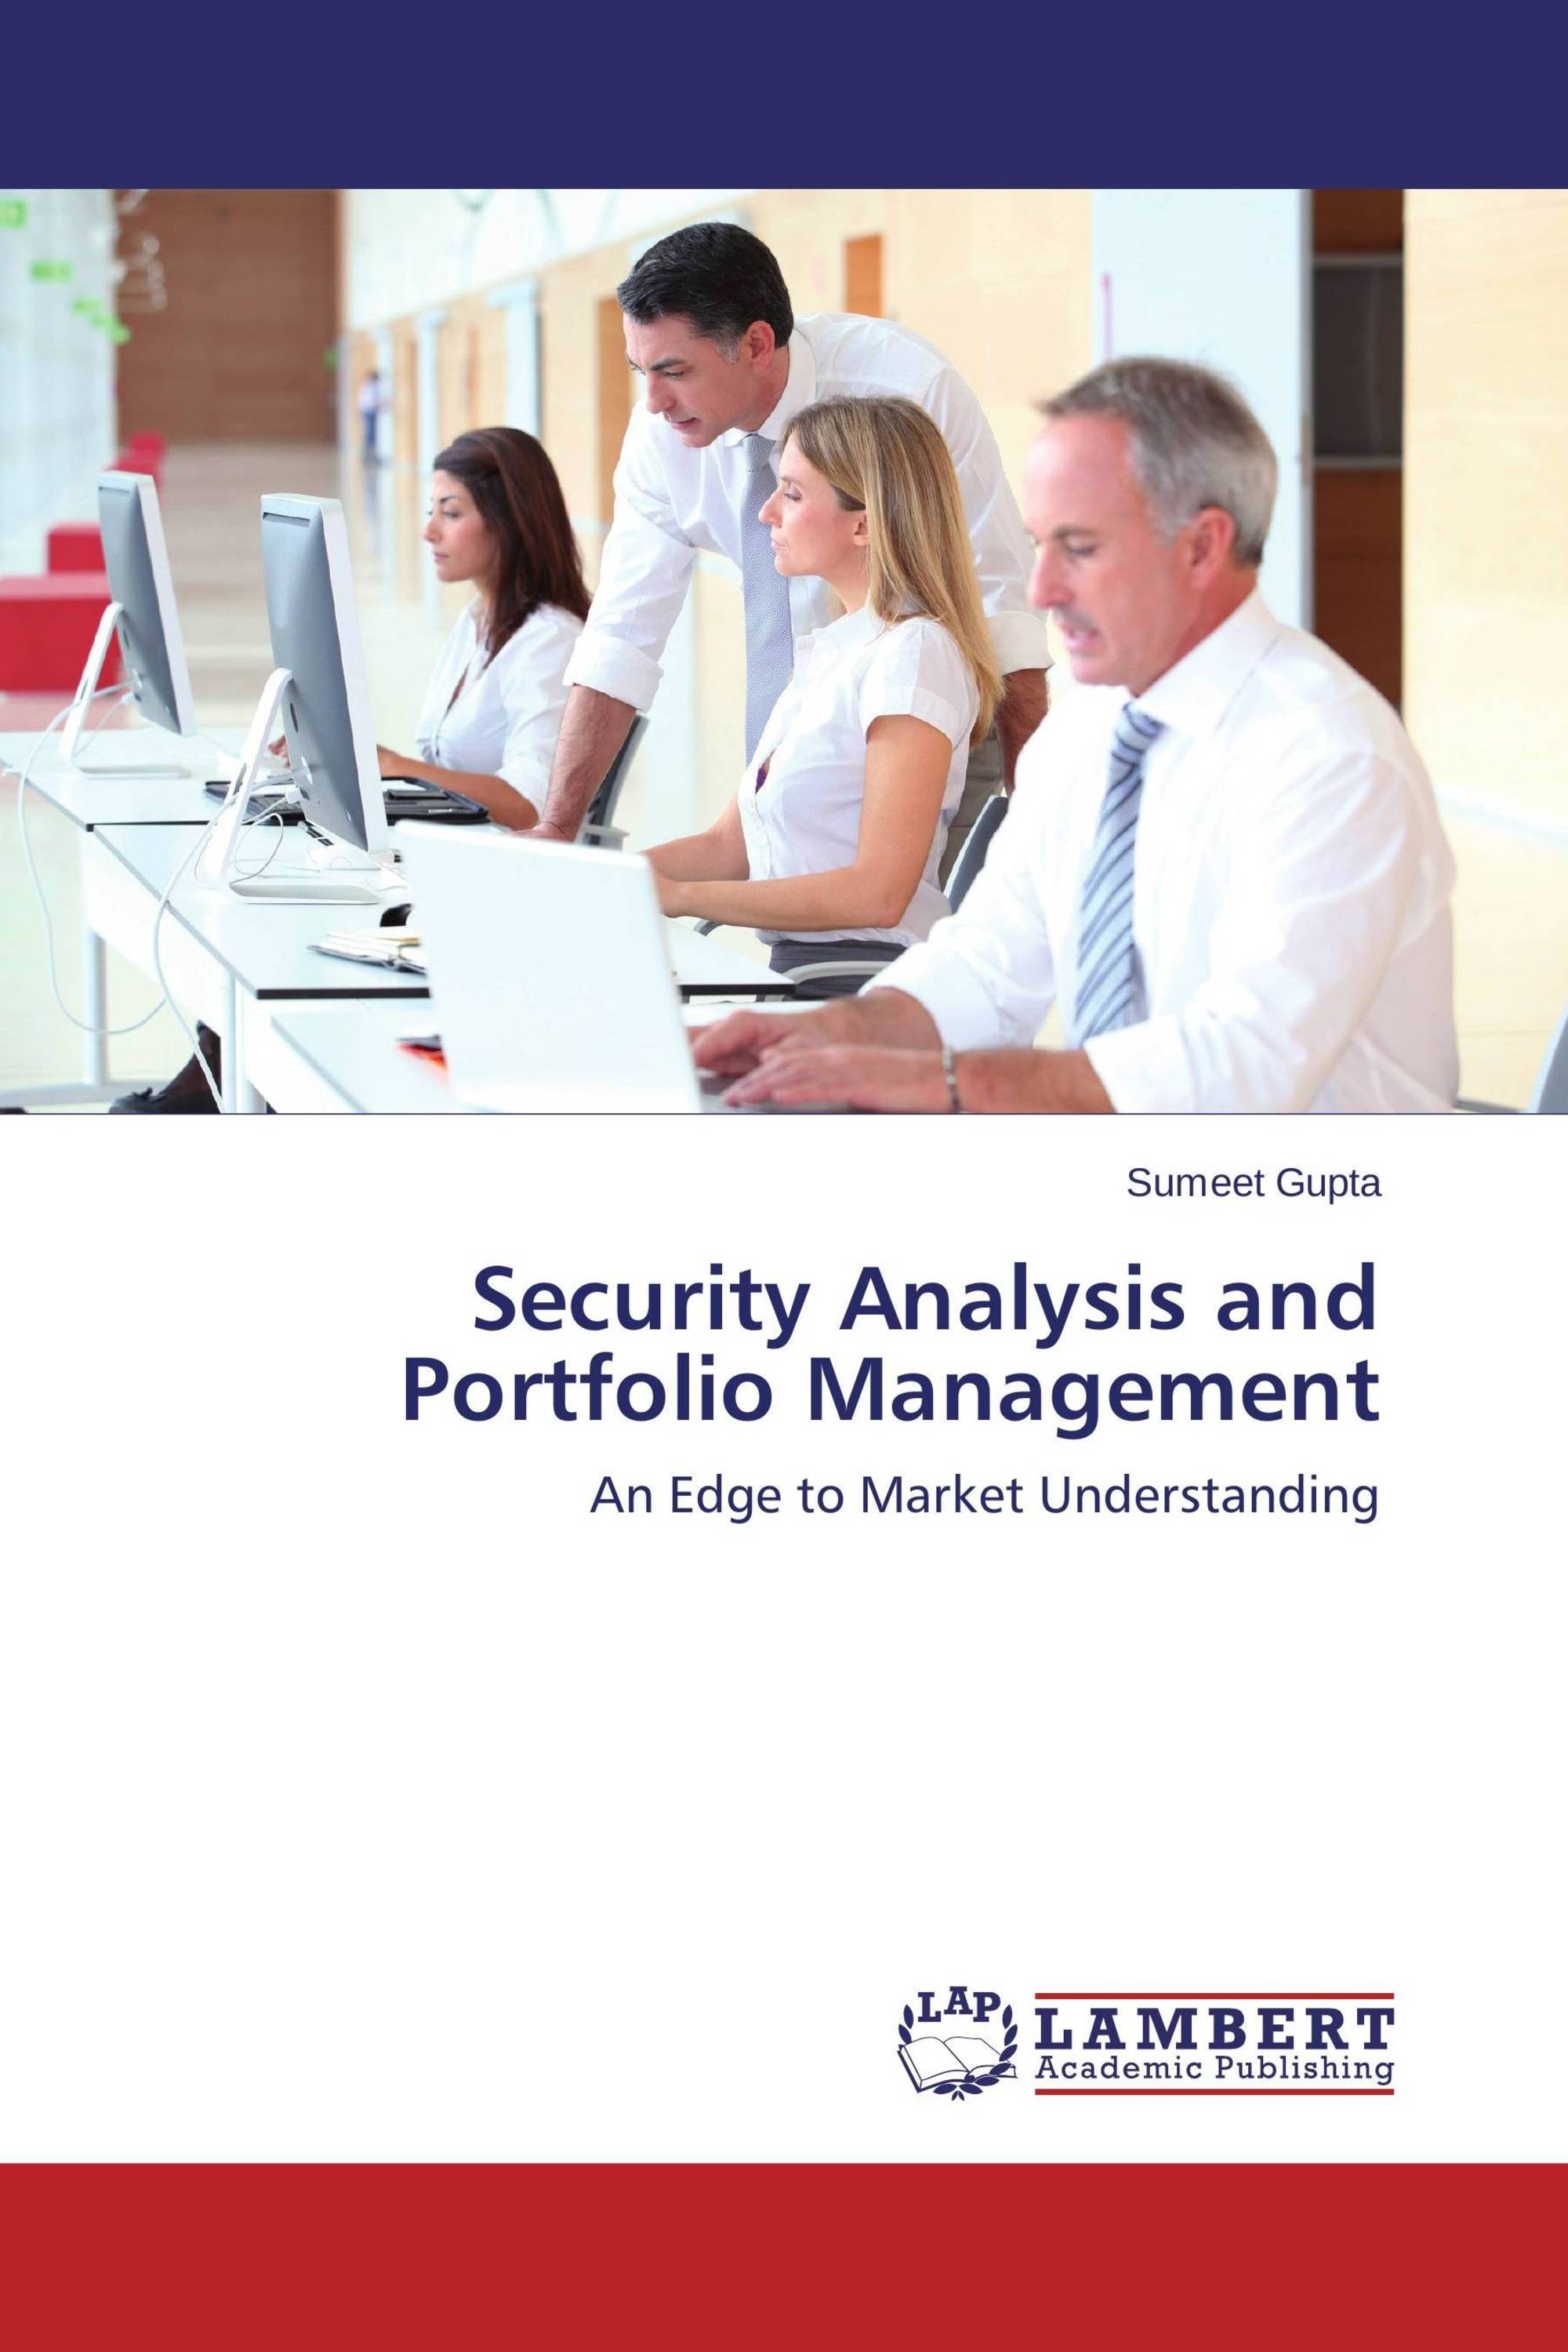 ba9257 security analysis and portfolio management